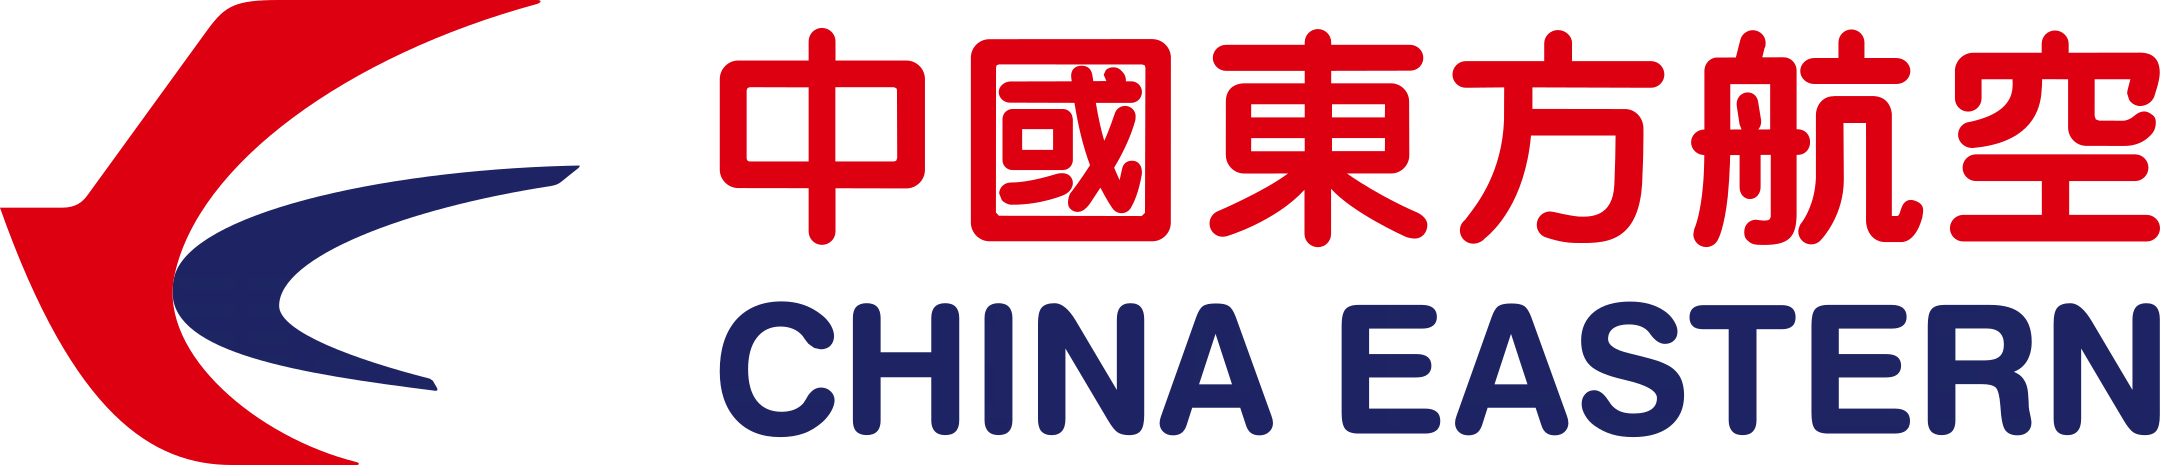 china eastern airlines logo 1 - China Eastern Airlines Logo